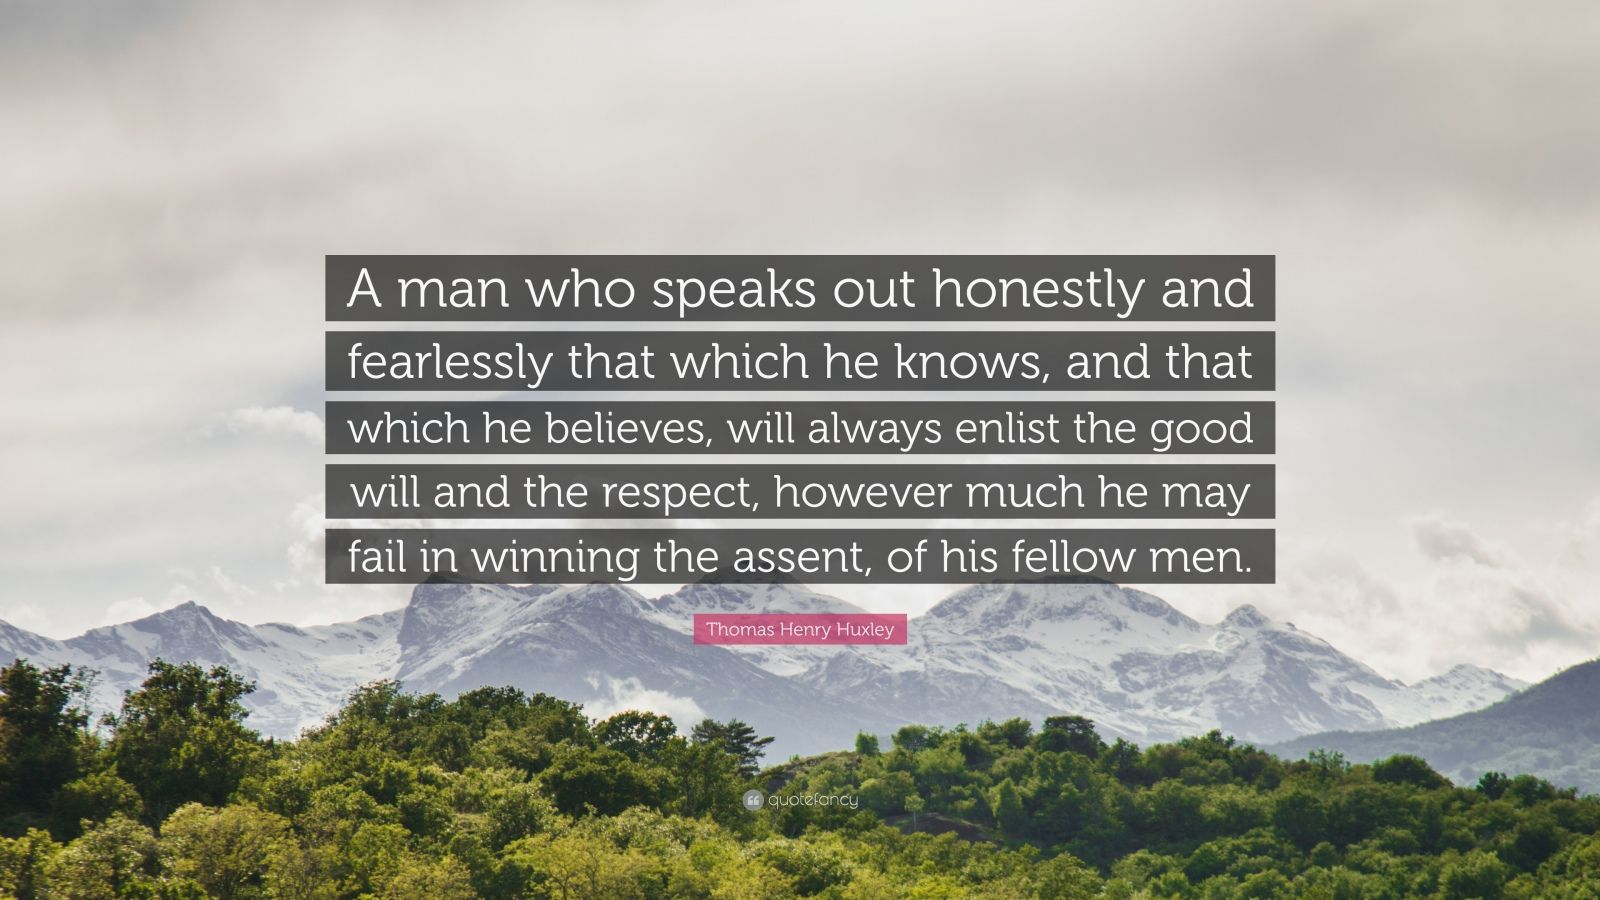 """Thomas Henry Huxley Quote: """"A man who speaks out honestly and fearlessly that which he knows, and that which he believes, will always enlist the good will and the respect, however much he may fail in winning the assent, of his fellow men."""""""